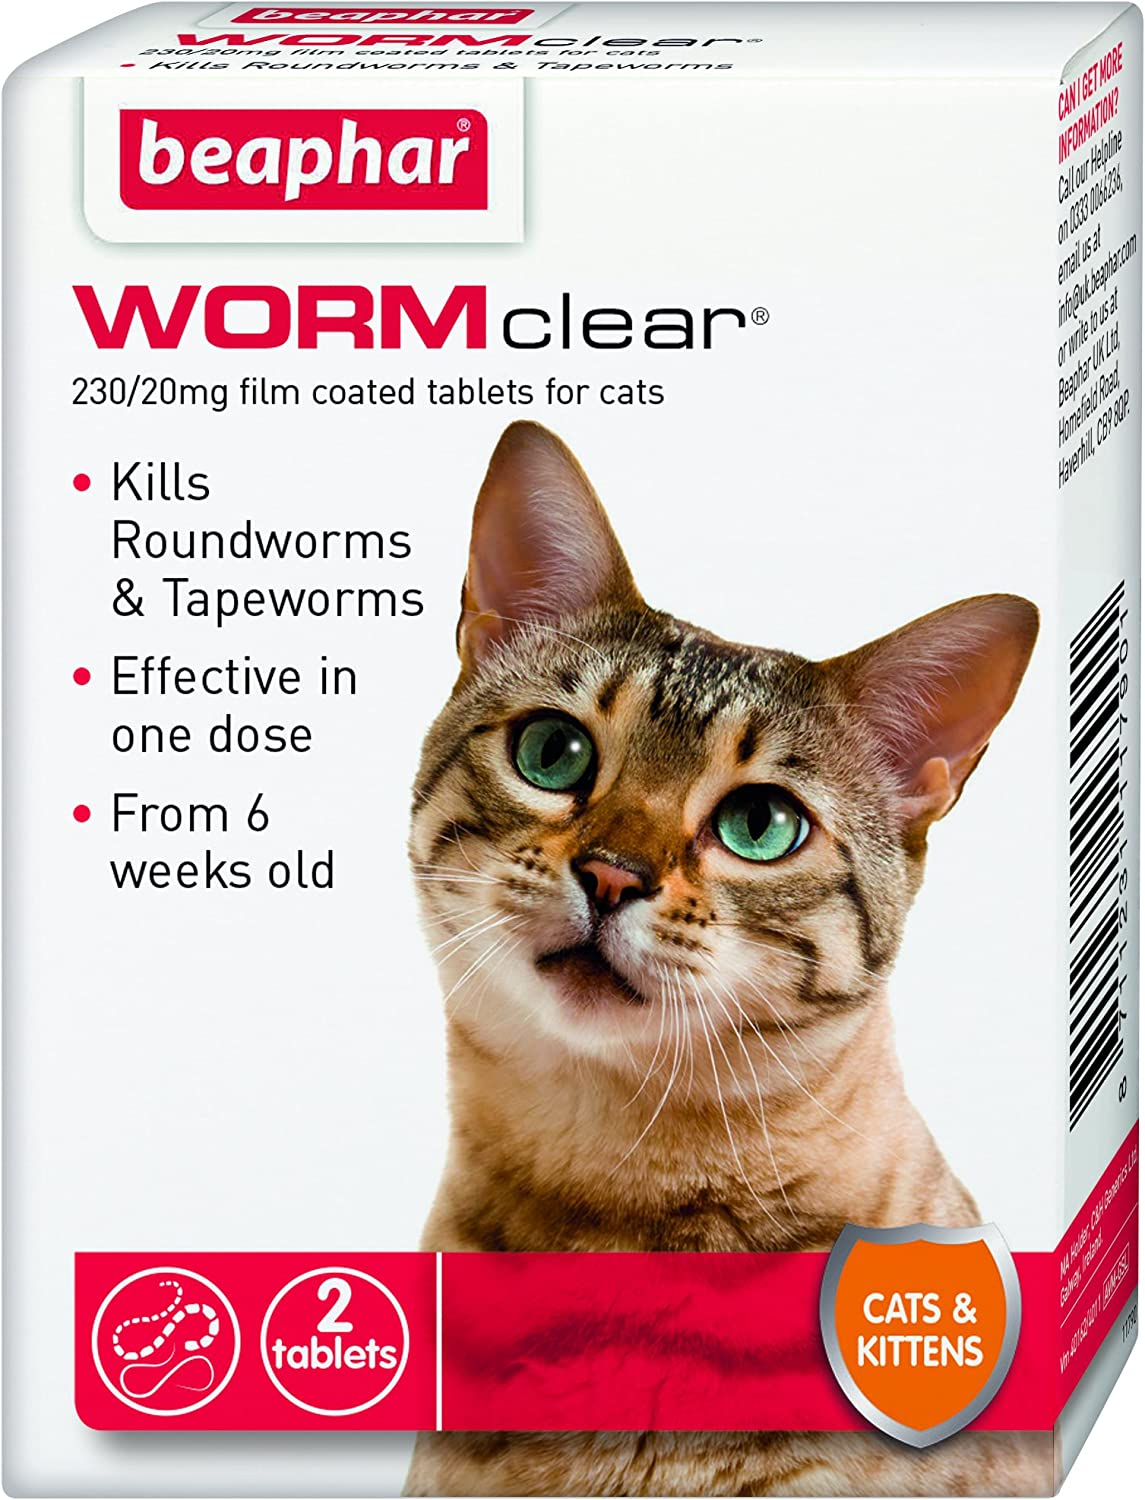 Beaphar Wormclear For Cats And Kittens Amazon Co Uk Pet Supplies